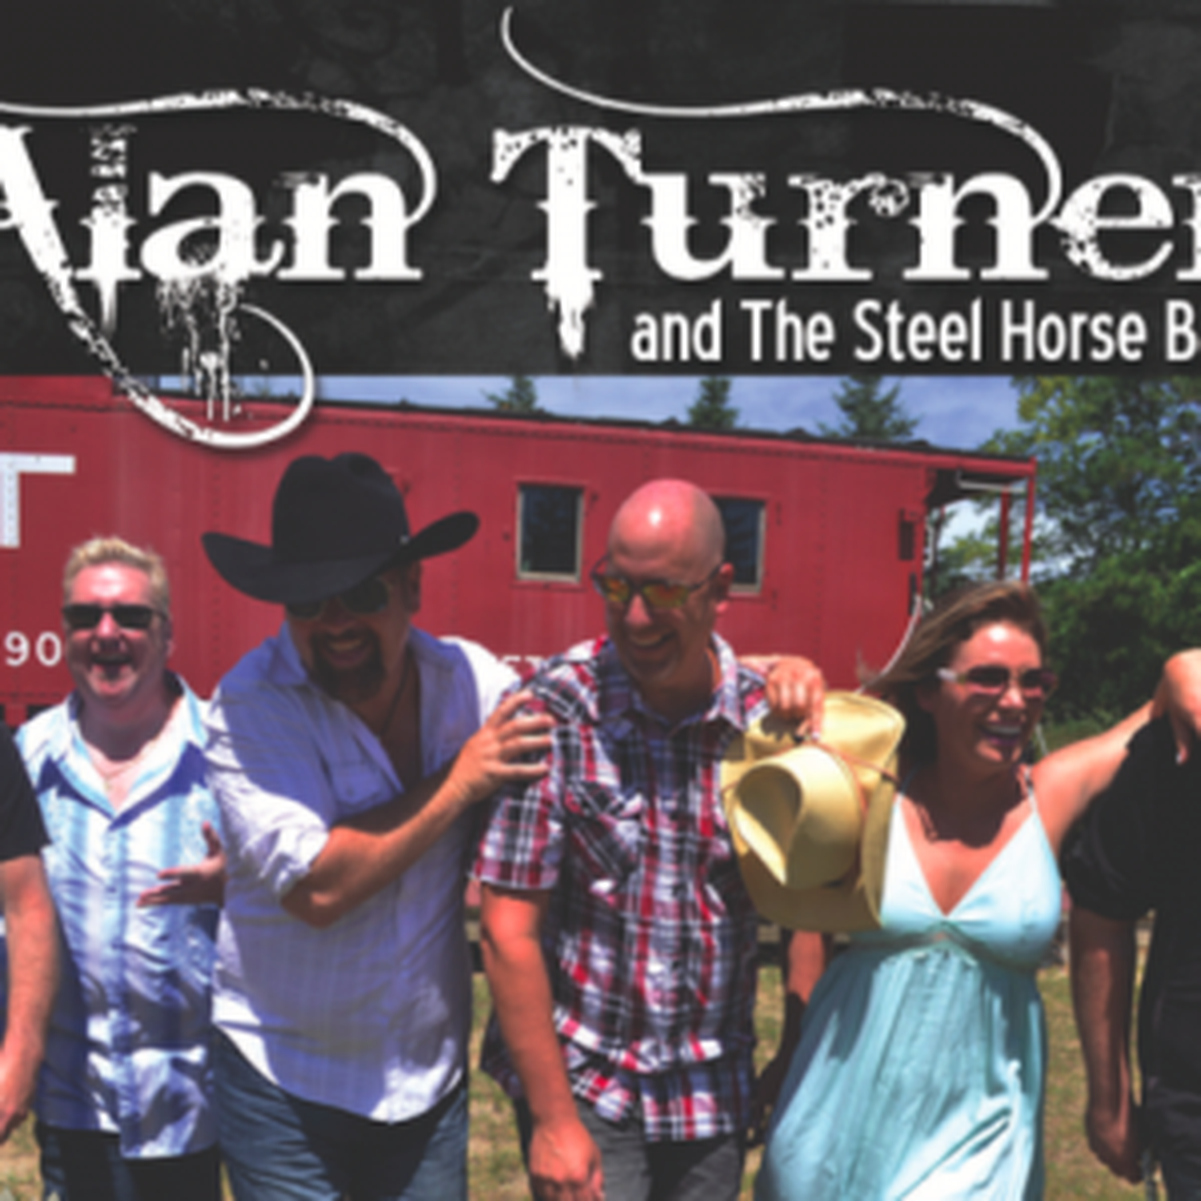 ALAN TURNER AND THE STEEL HORSE BAND